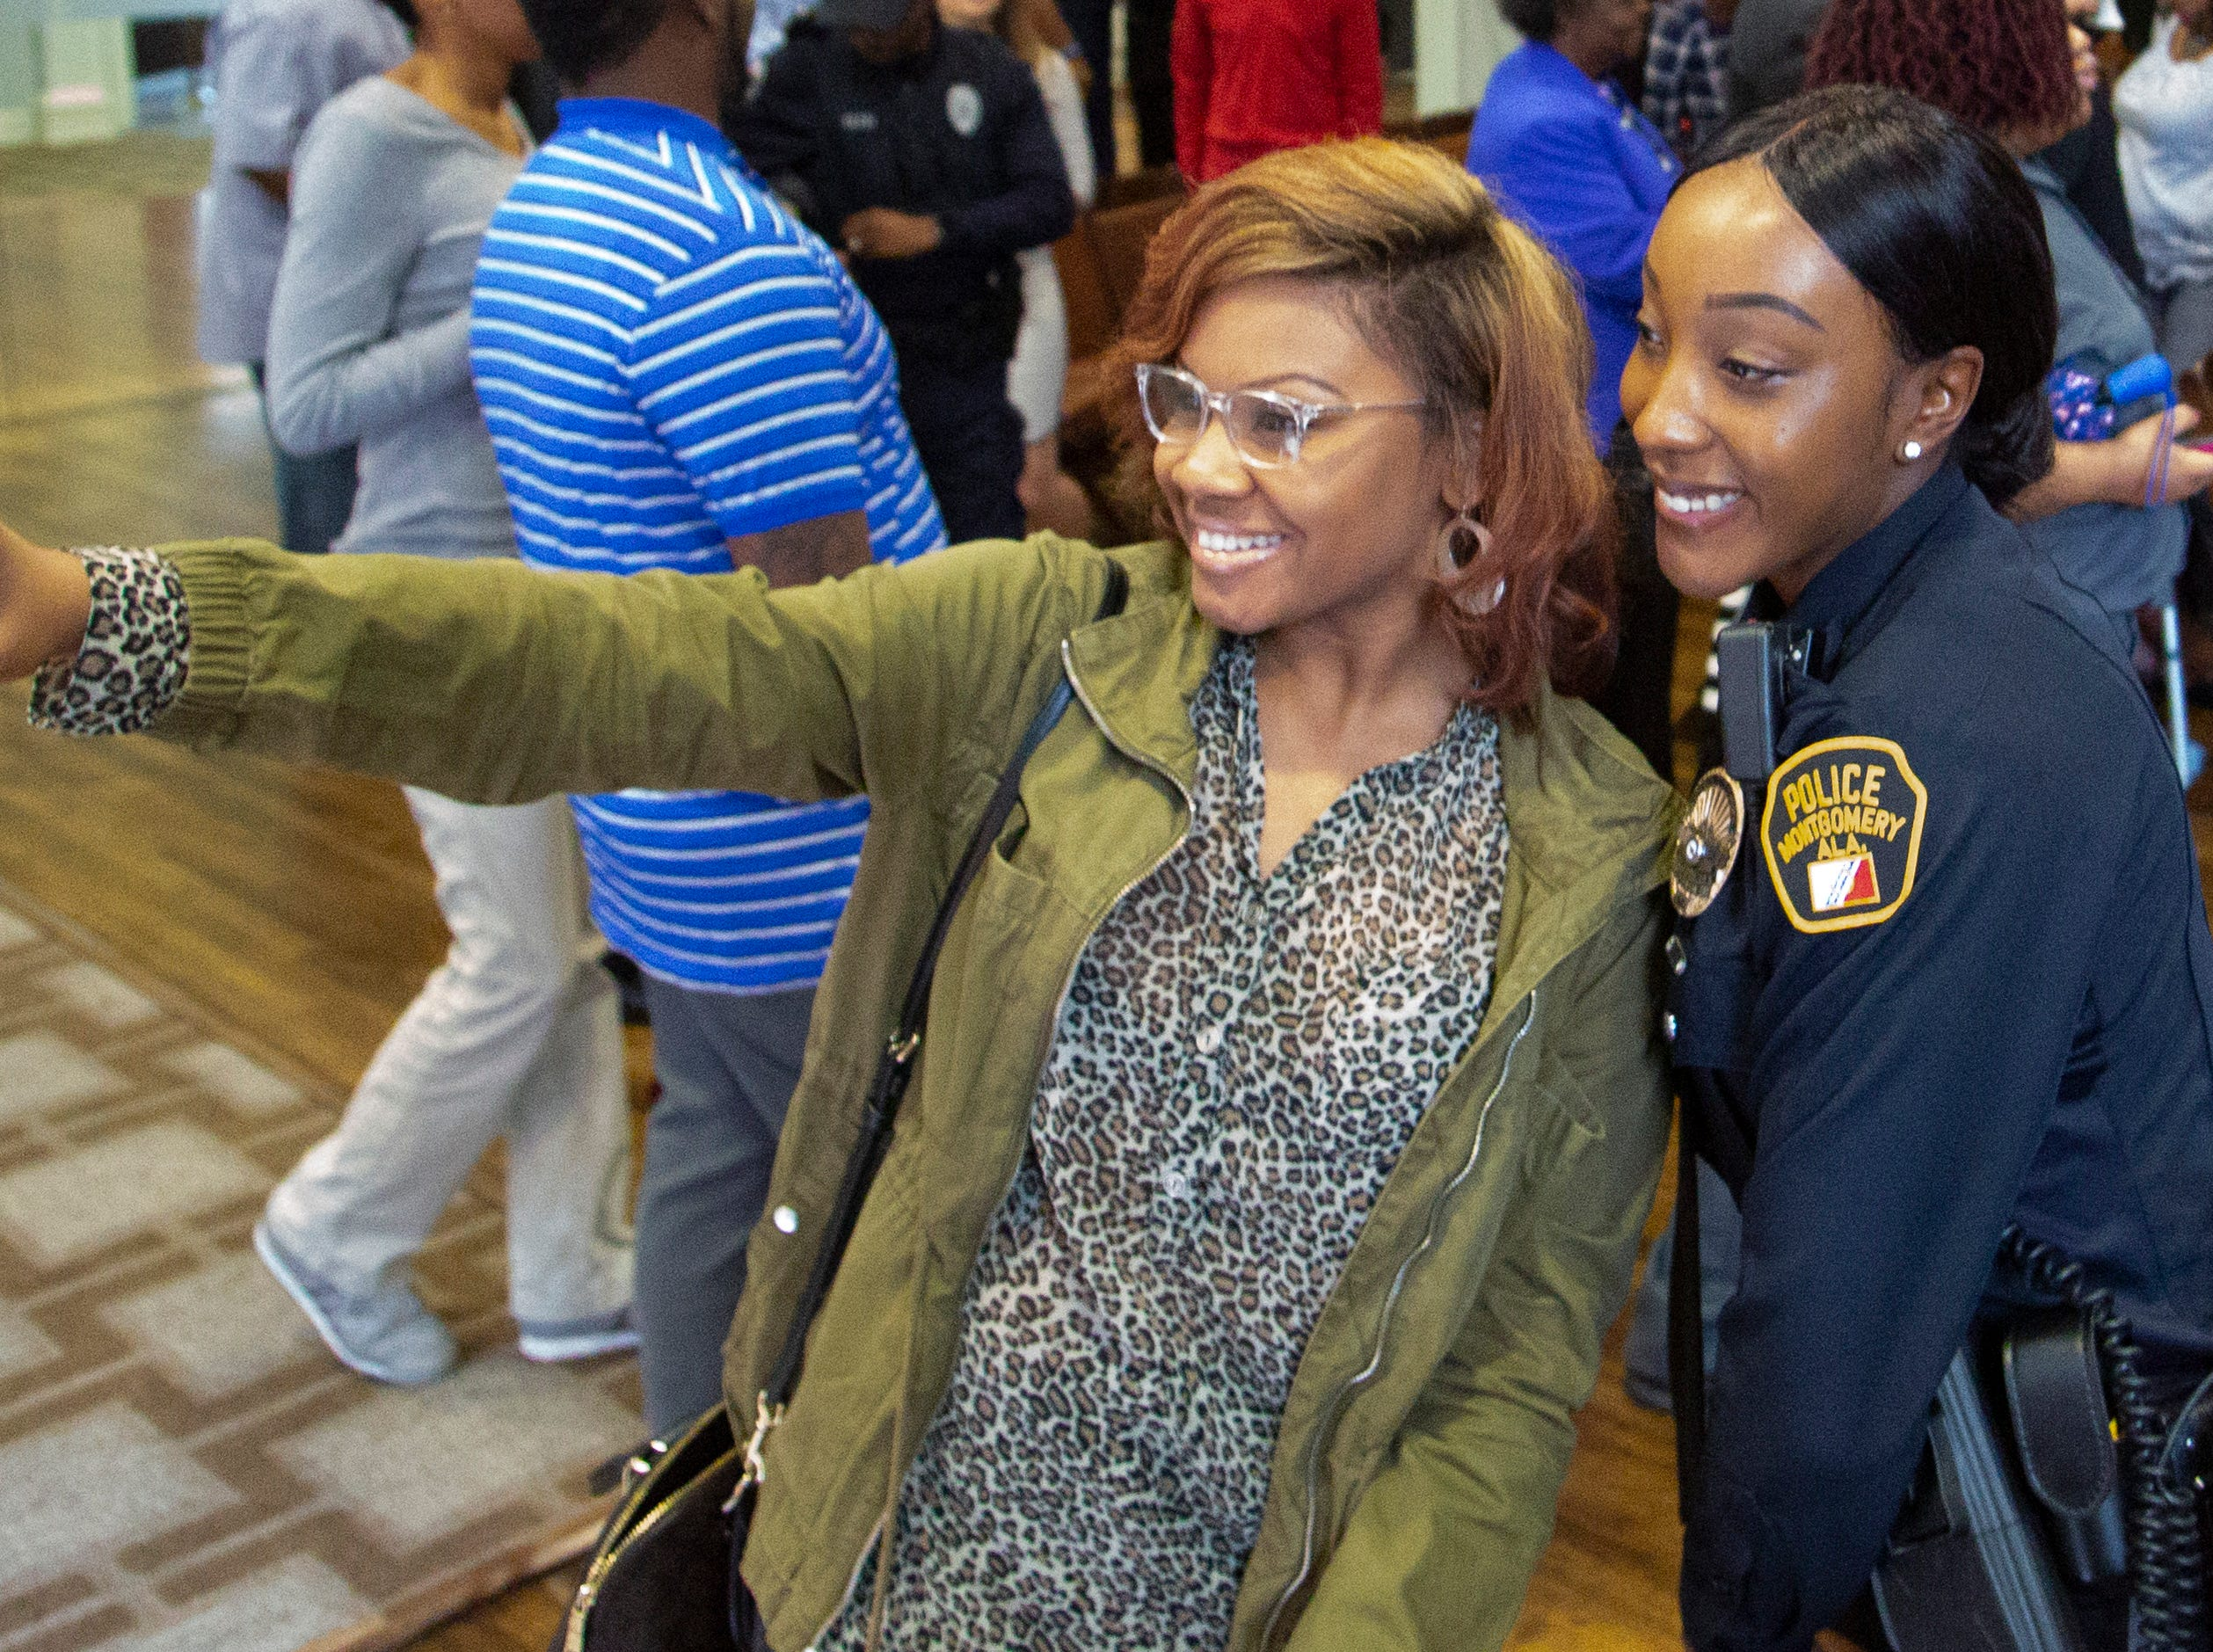 Montgomery police officer Alicia Terrell takes a selfie with a supporter after graduation.